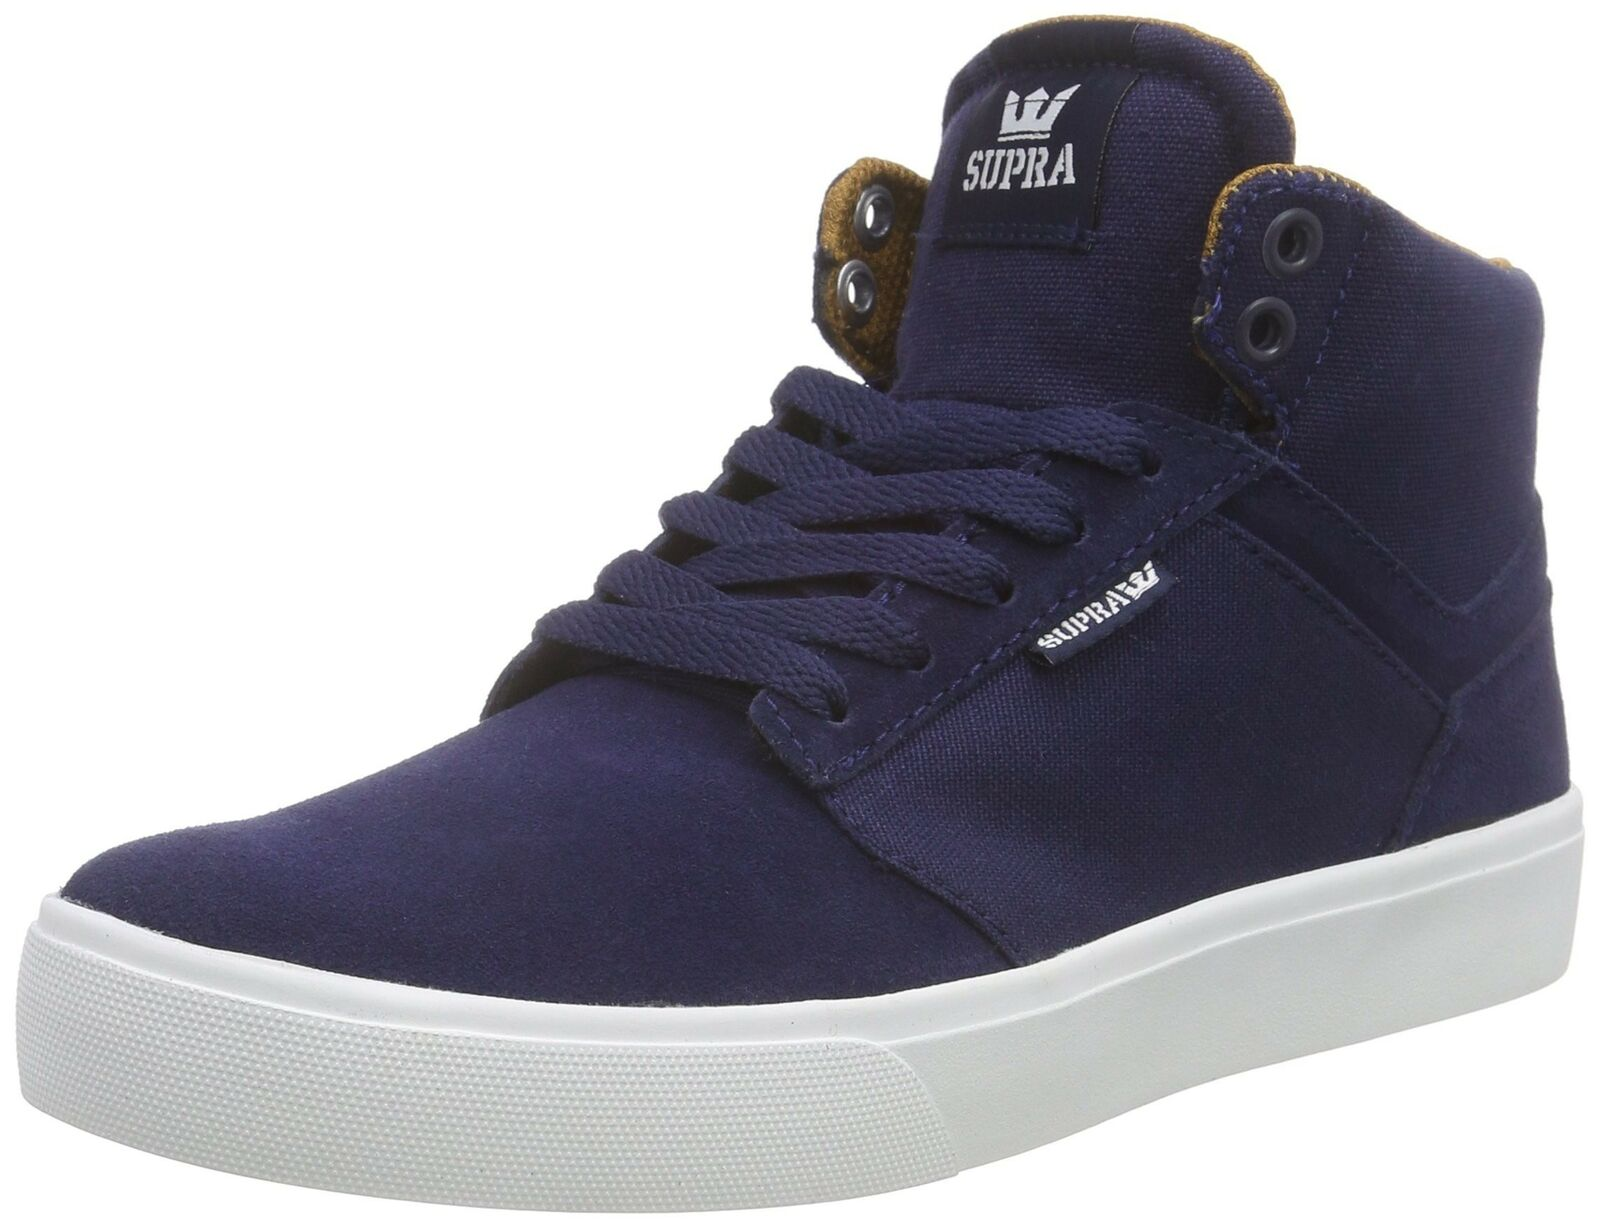 Supra Mens Yorek Hi shoes Size 11 Navy - White